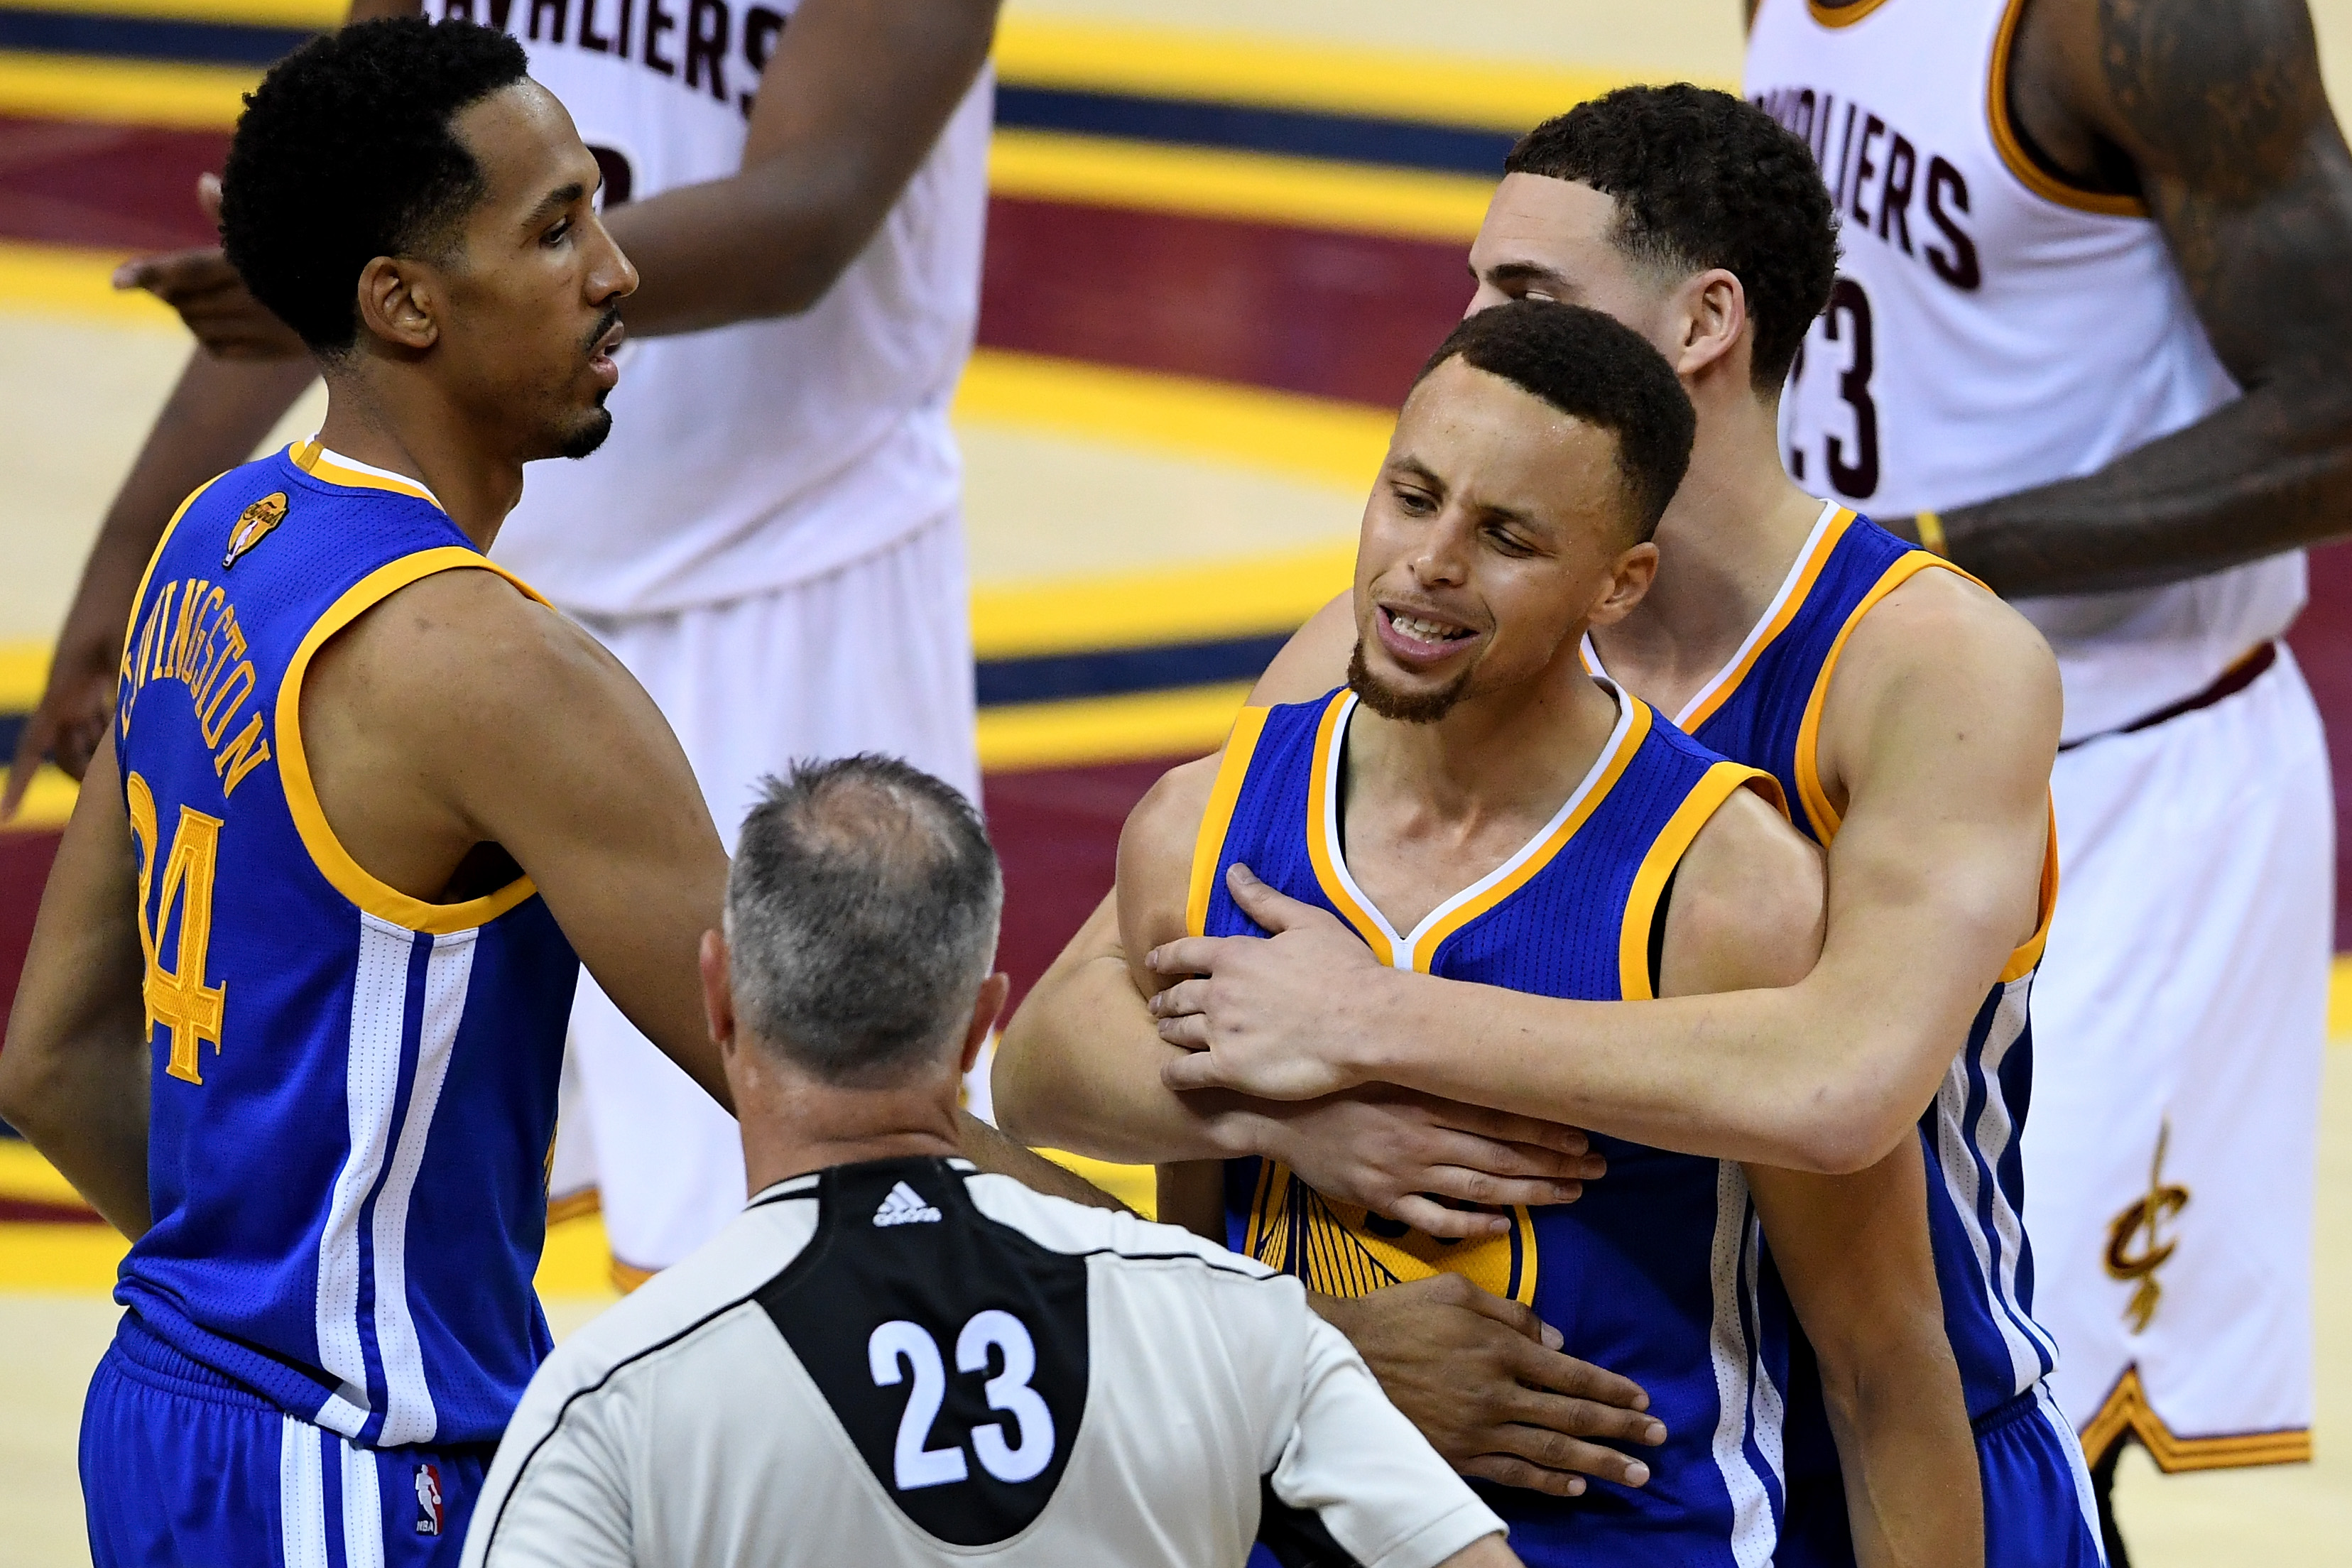 CLEVELAND, OH - JUNE 16:  Stephen Curry #30 of the Golden State Warriors reacts to a foul call during the fourth quarter against the Cleveland Cavaliers in Game 6 of the 2016 NBA Finals at Quicken Loans Arena on June 16, 2016 in Cleveland, Ohio. (Photo by